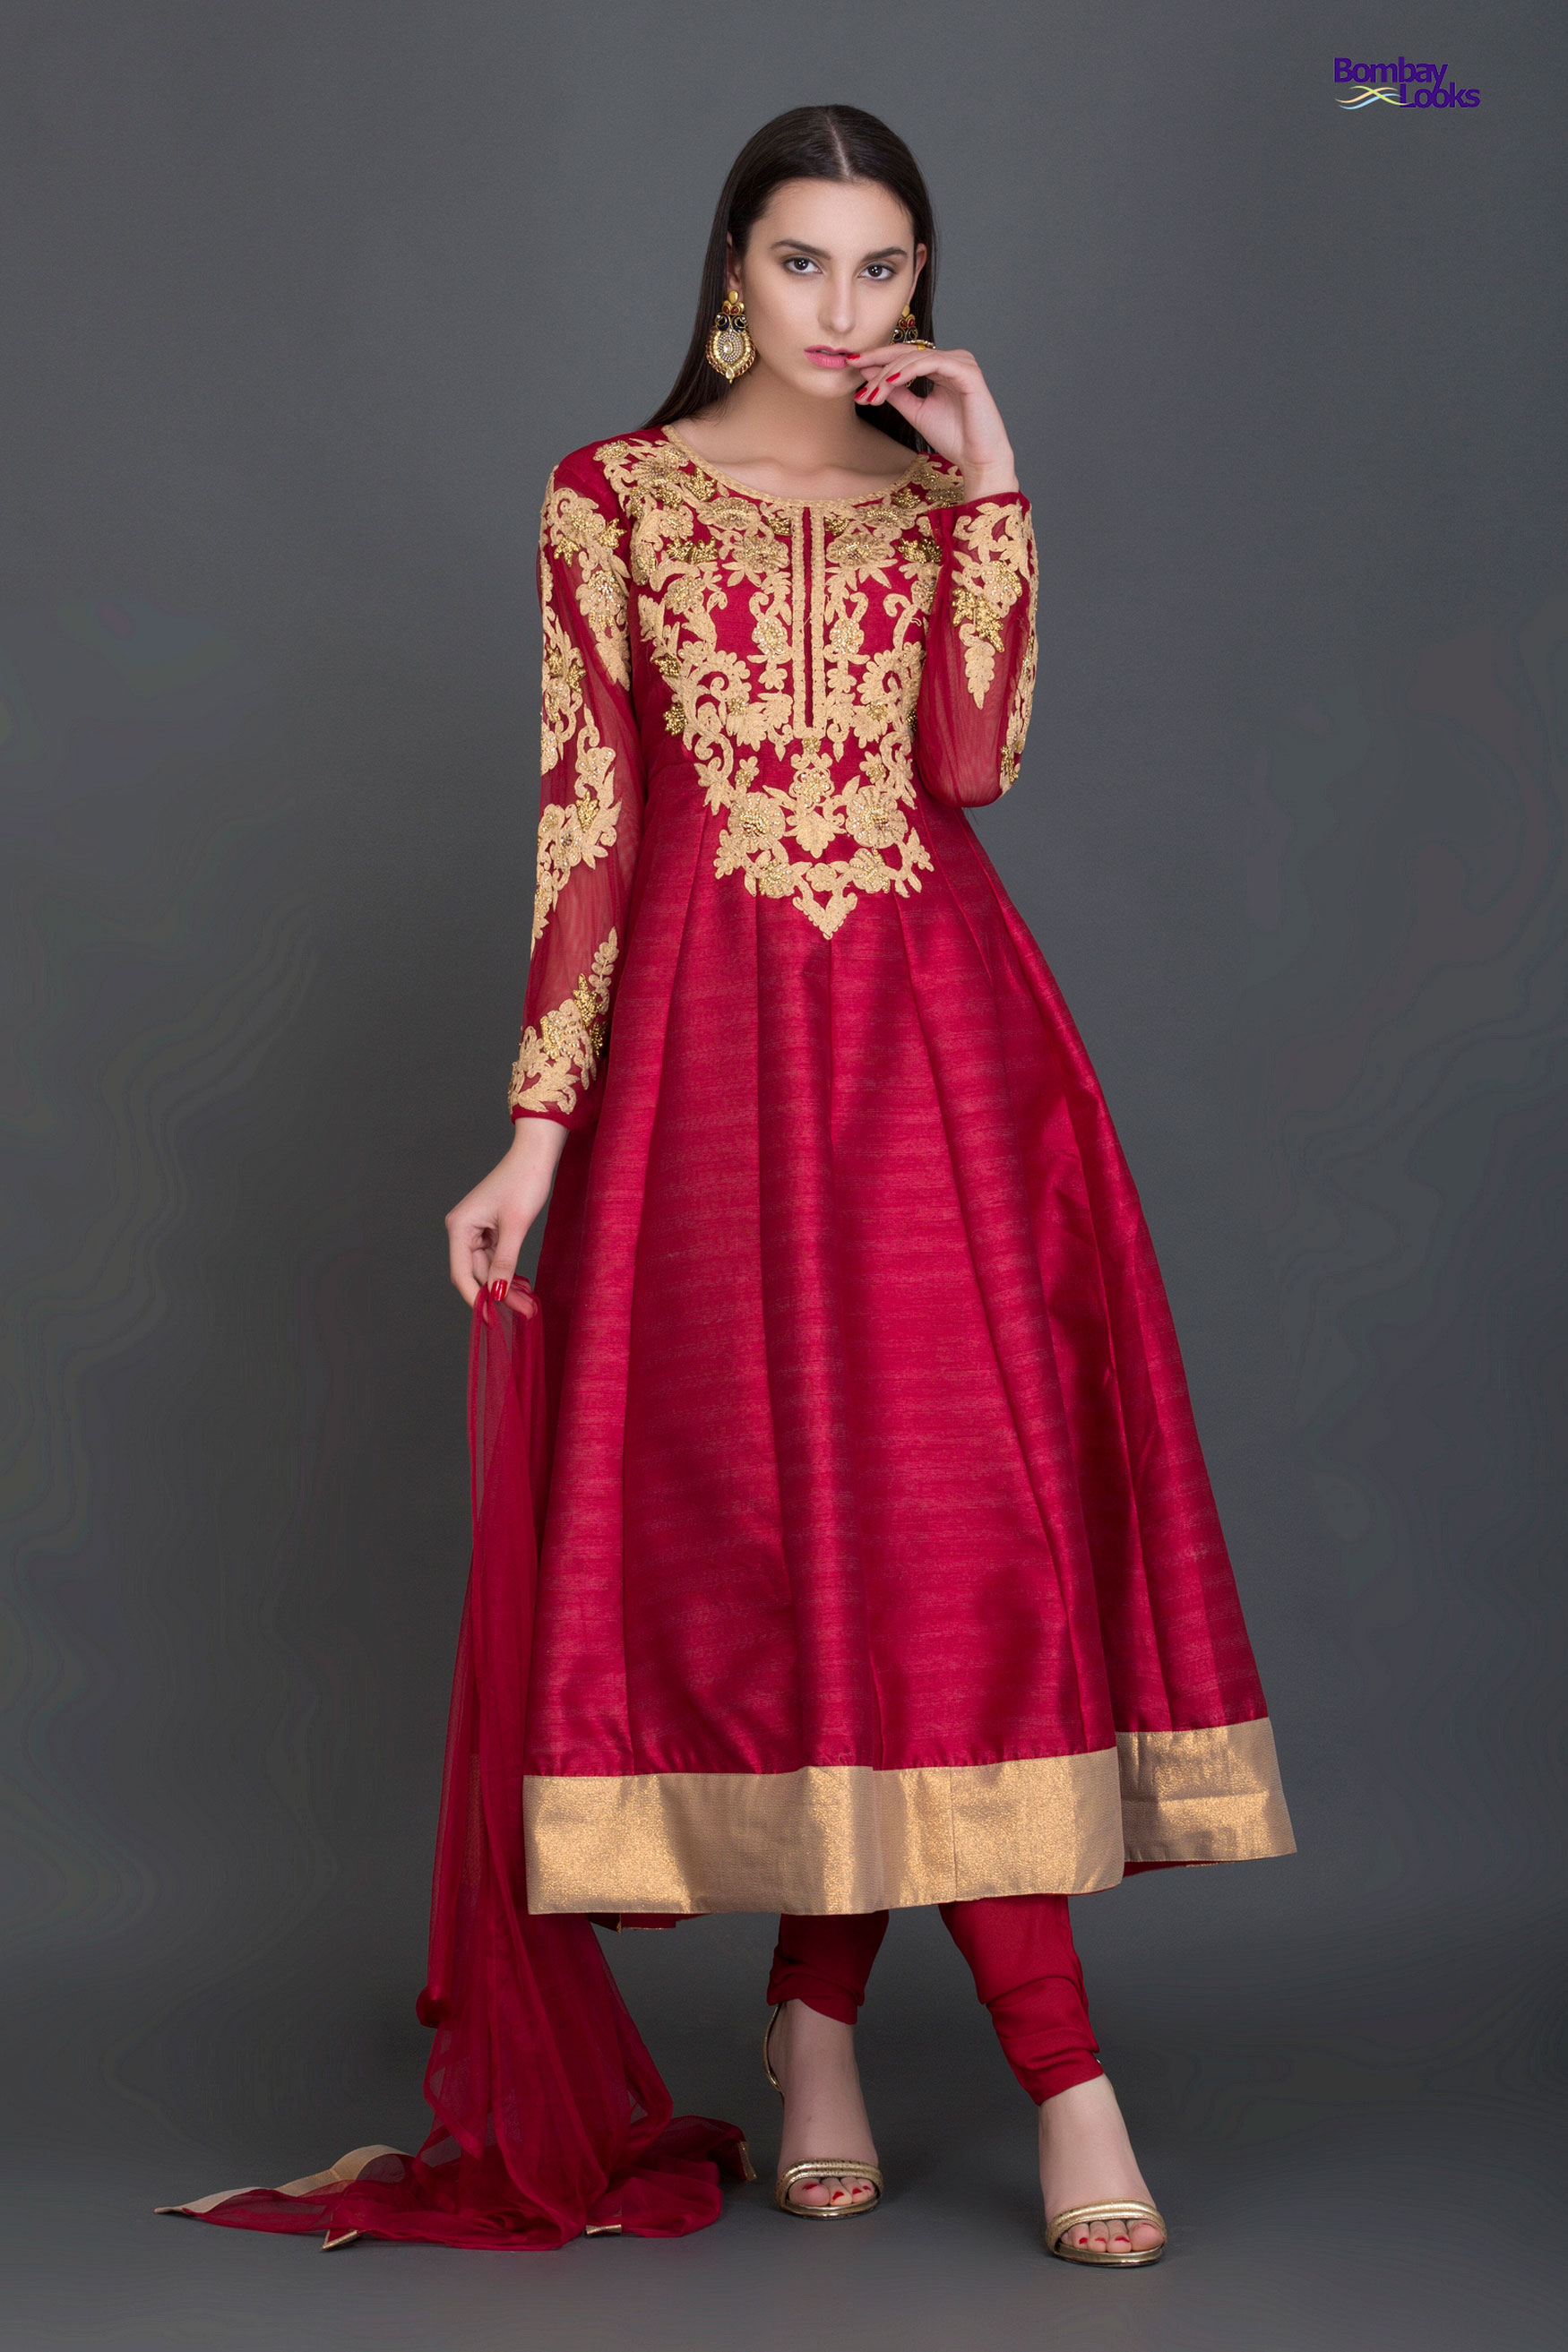 Gorgeous royal anarkali red suit with rich golden embroidery